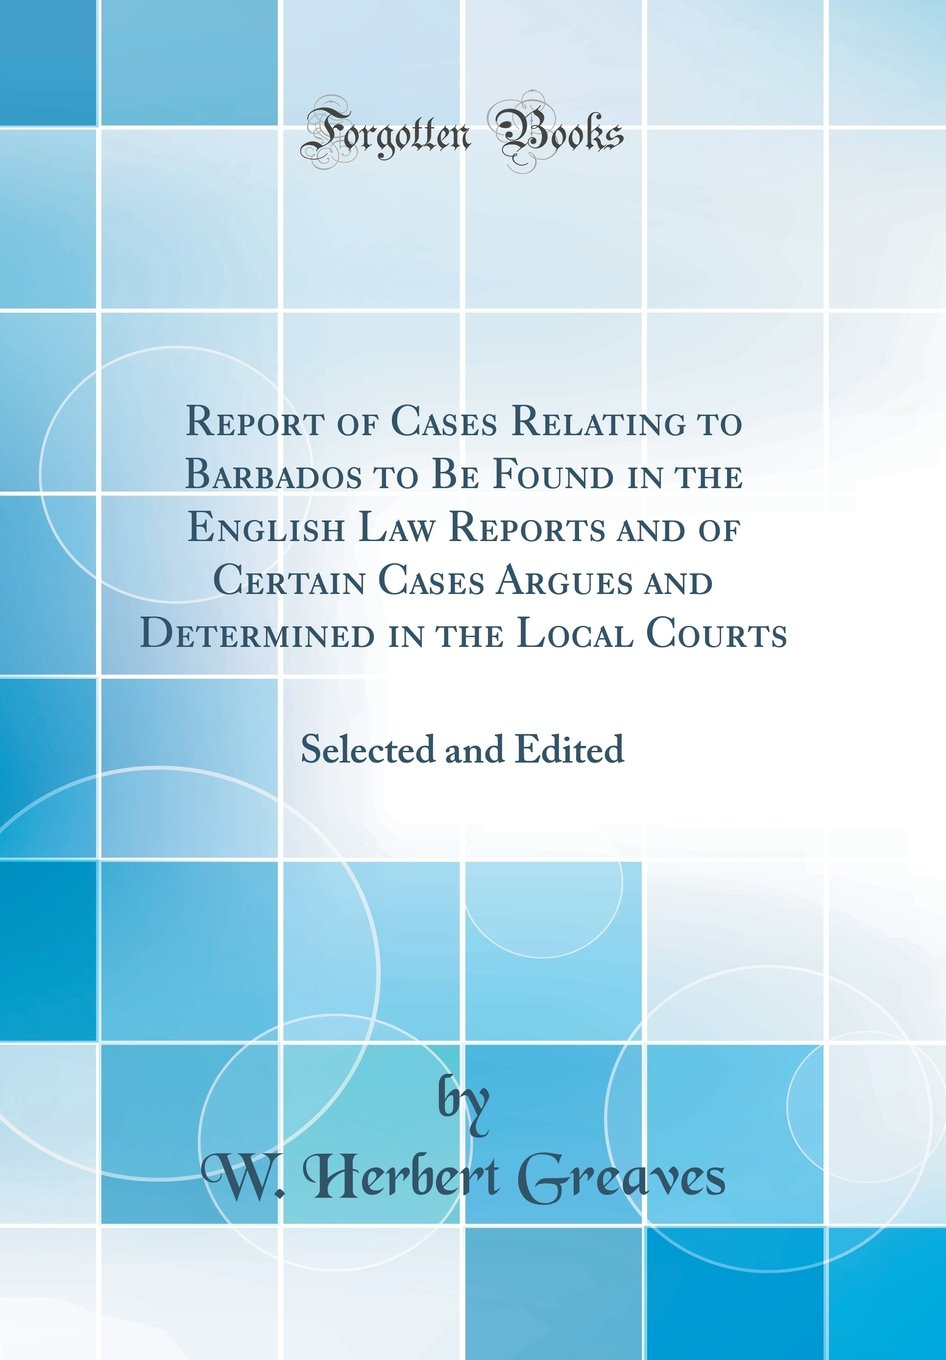 Download Report of Cases Relating to Barbados to Be Found in the English Law Reports and of Certain Cases Argues and Determined in the Local Courts: Selected and Edited (Classic Reprint) pdf